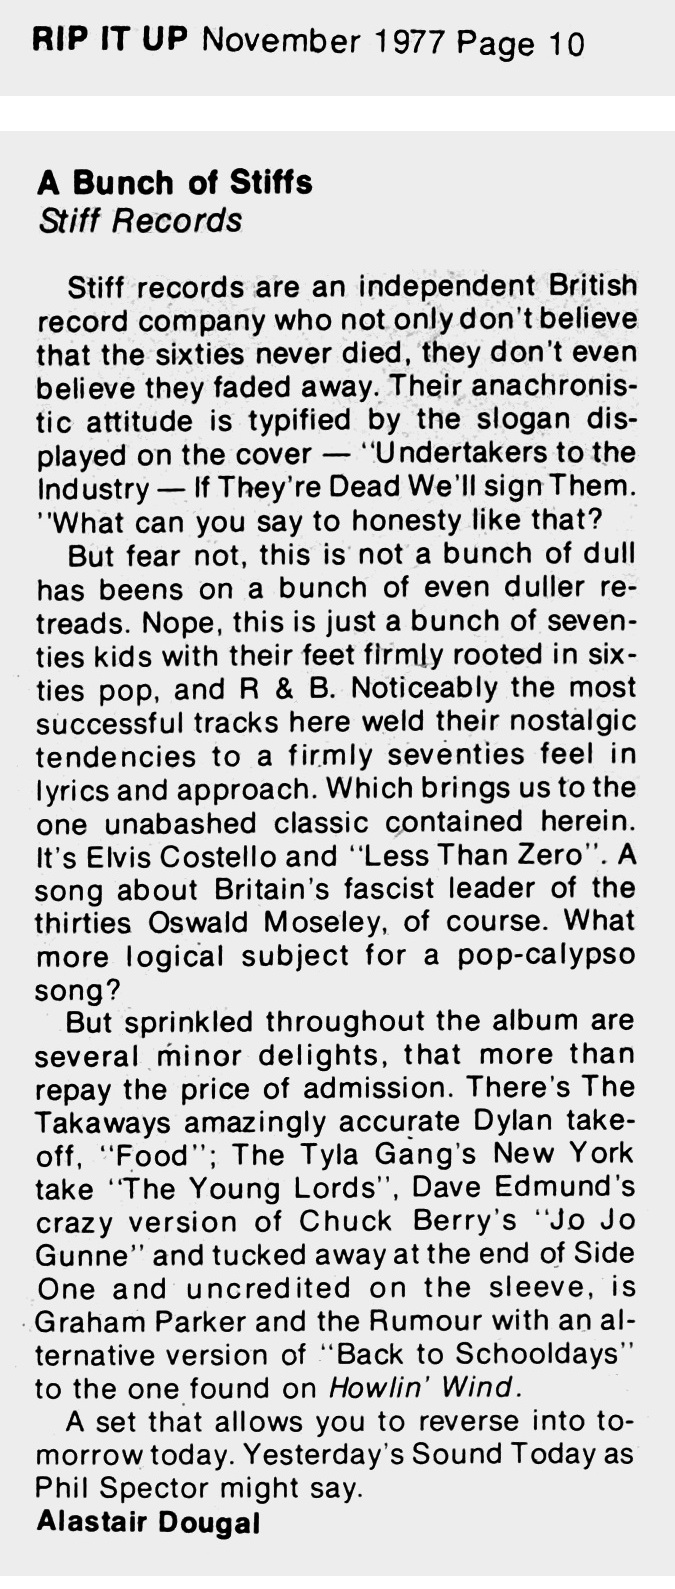 1977-11-00 Rip It Up page 10 clipping 01.jpg